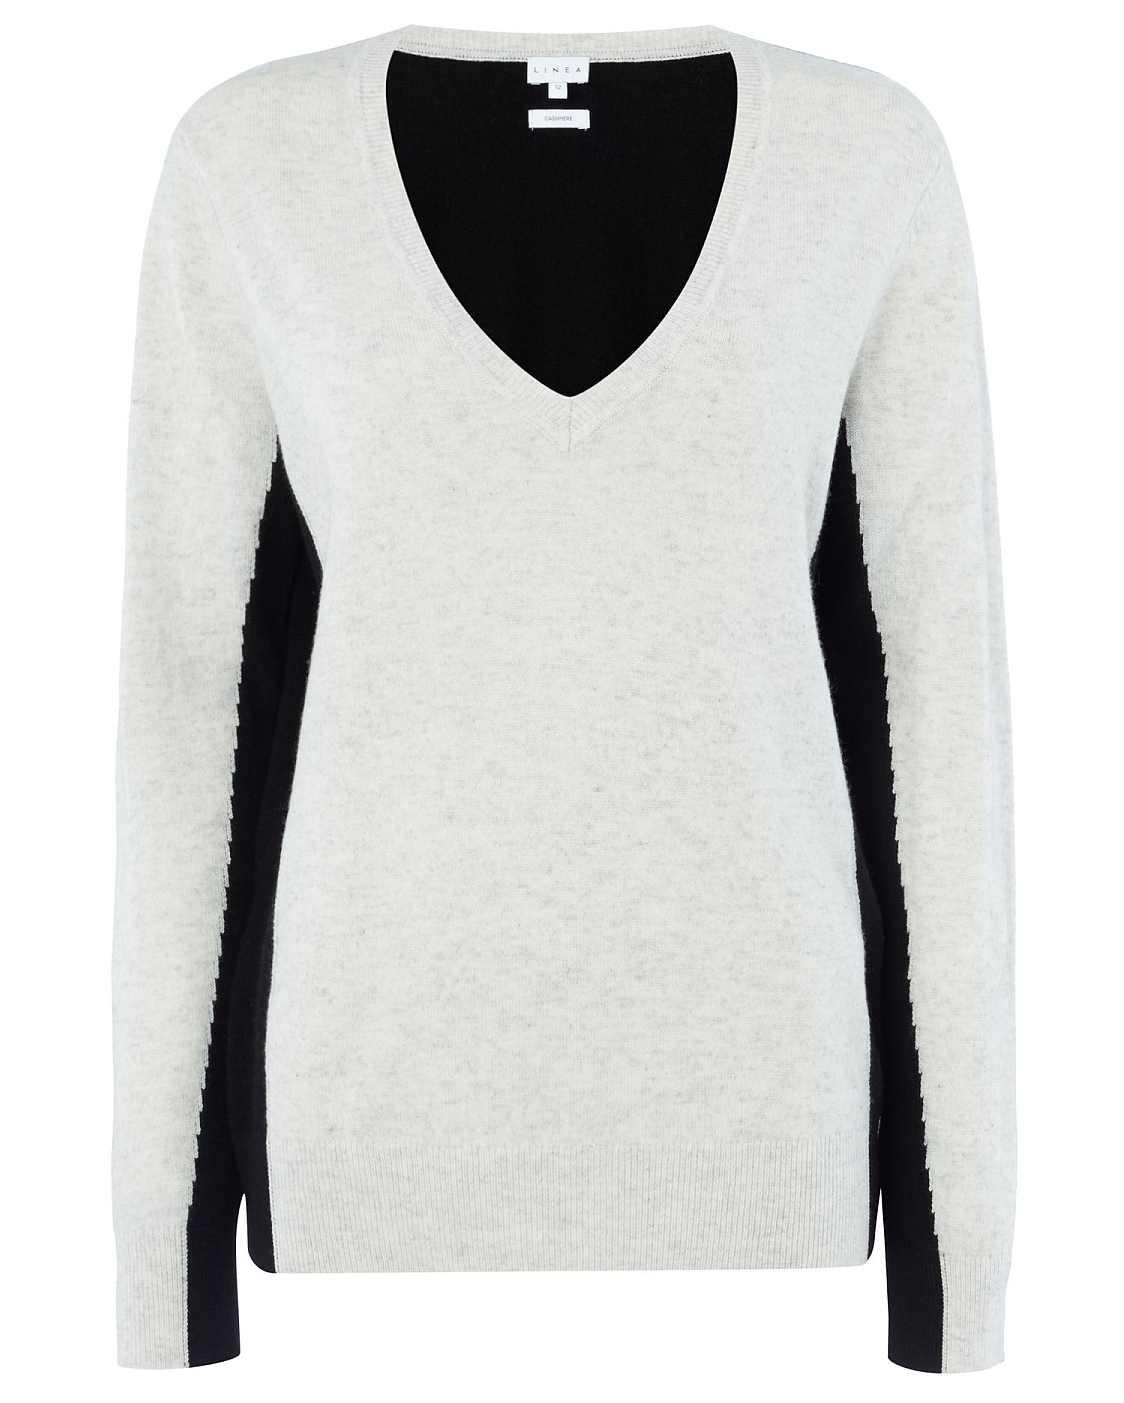 Linea Cashmere Jumper from House of Fraser